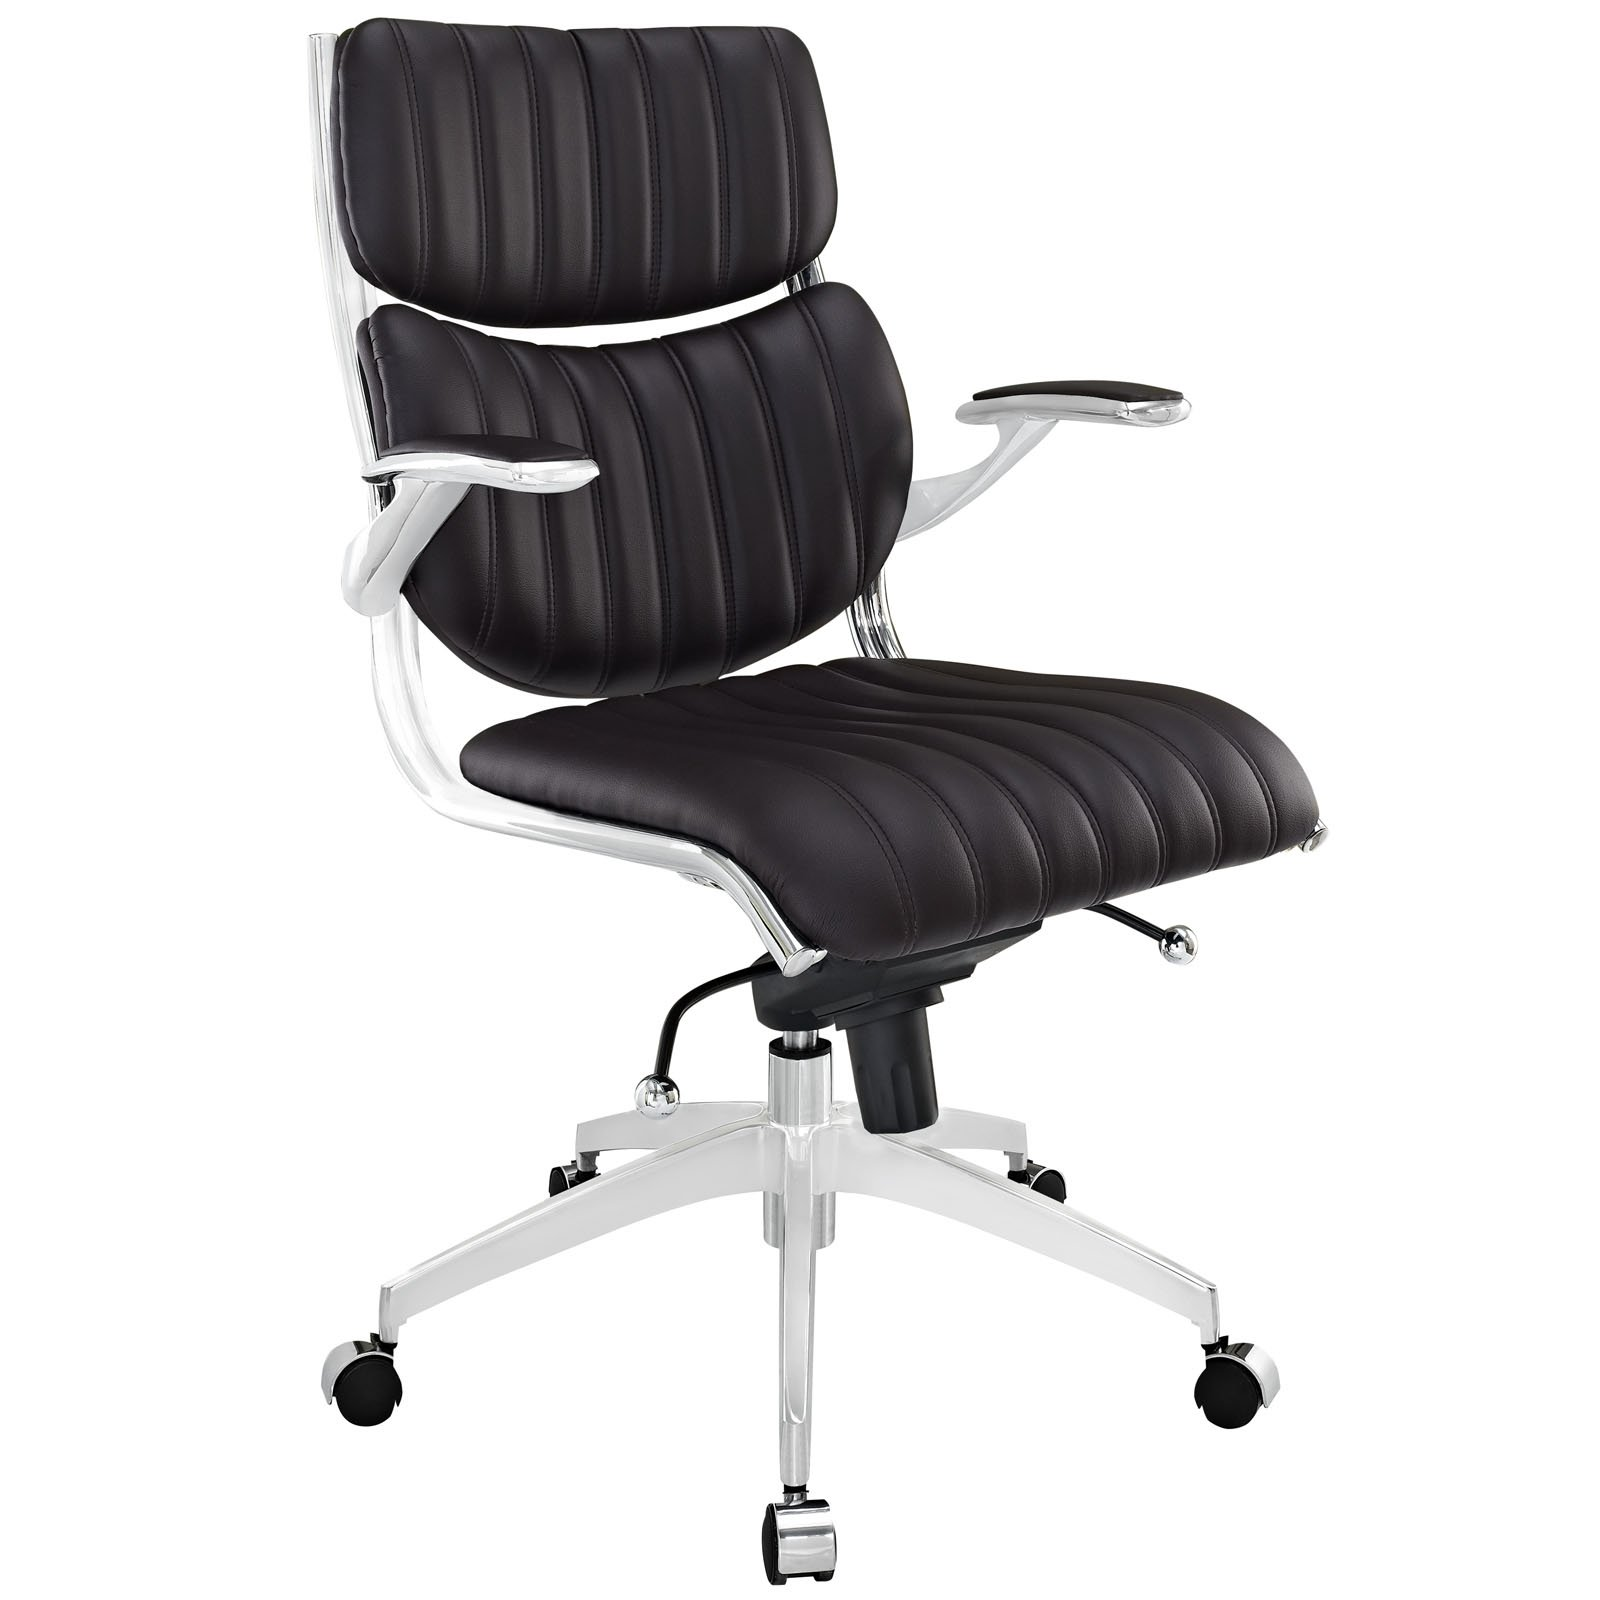 Modway Escape Mid-Back Office Chair, Brown